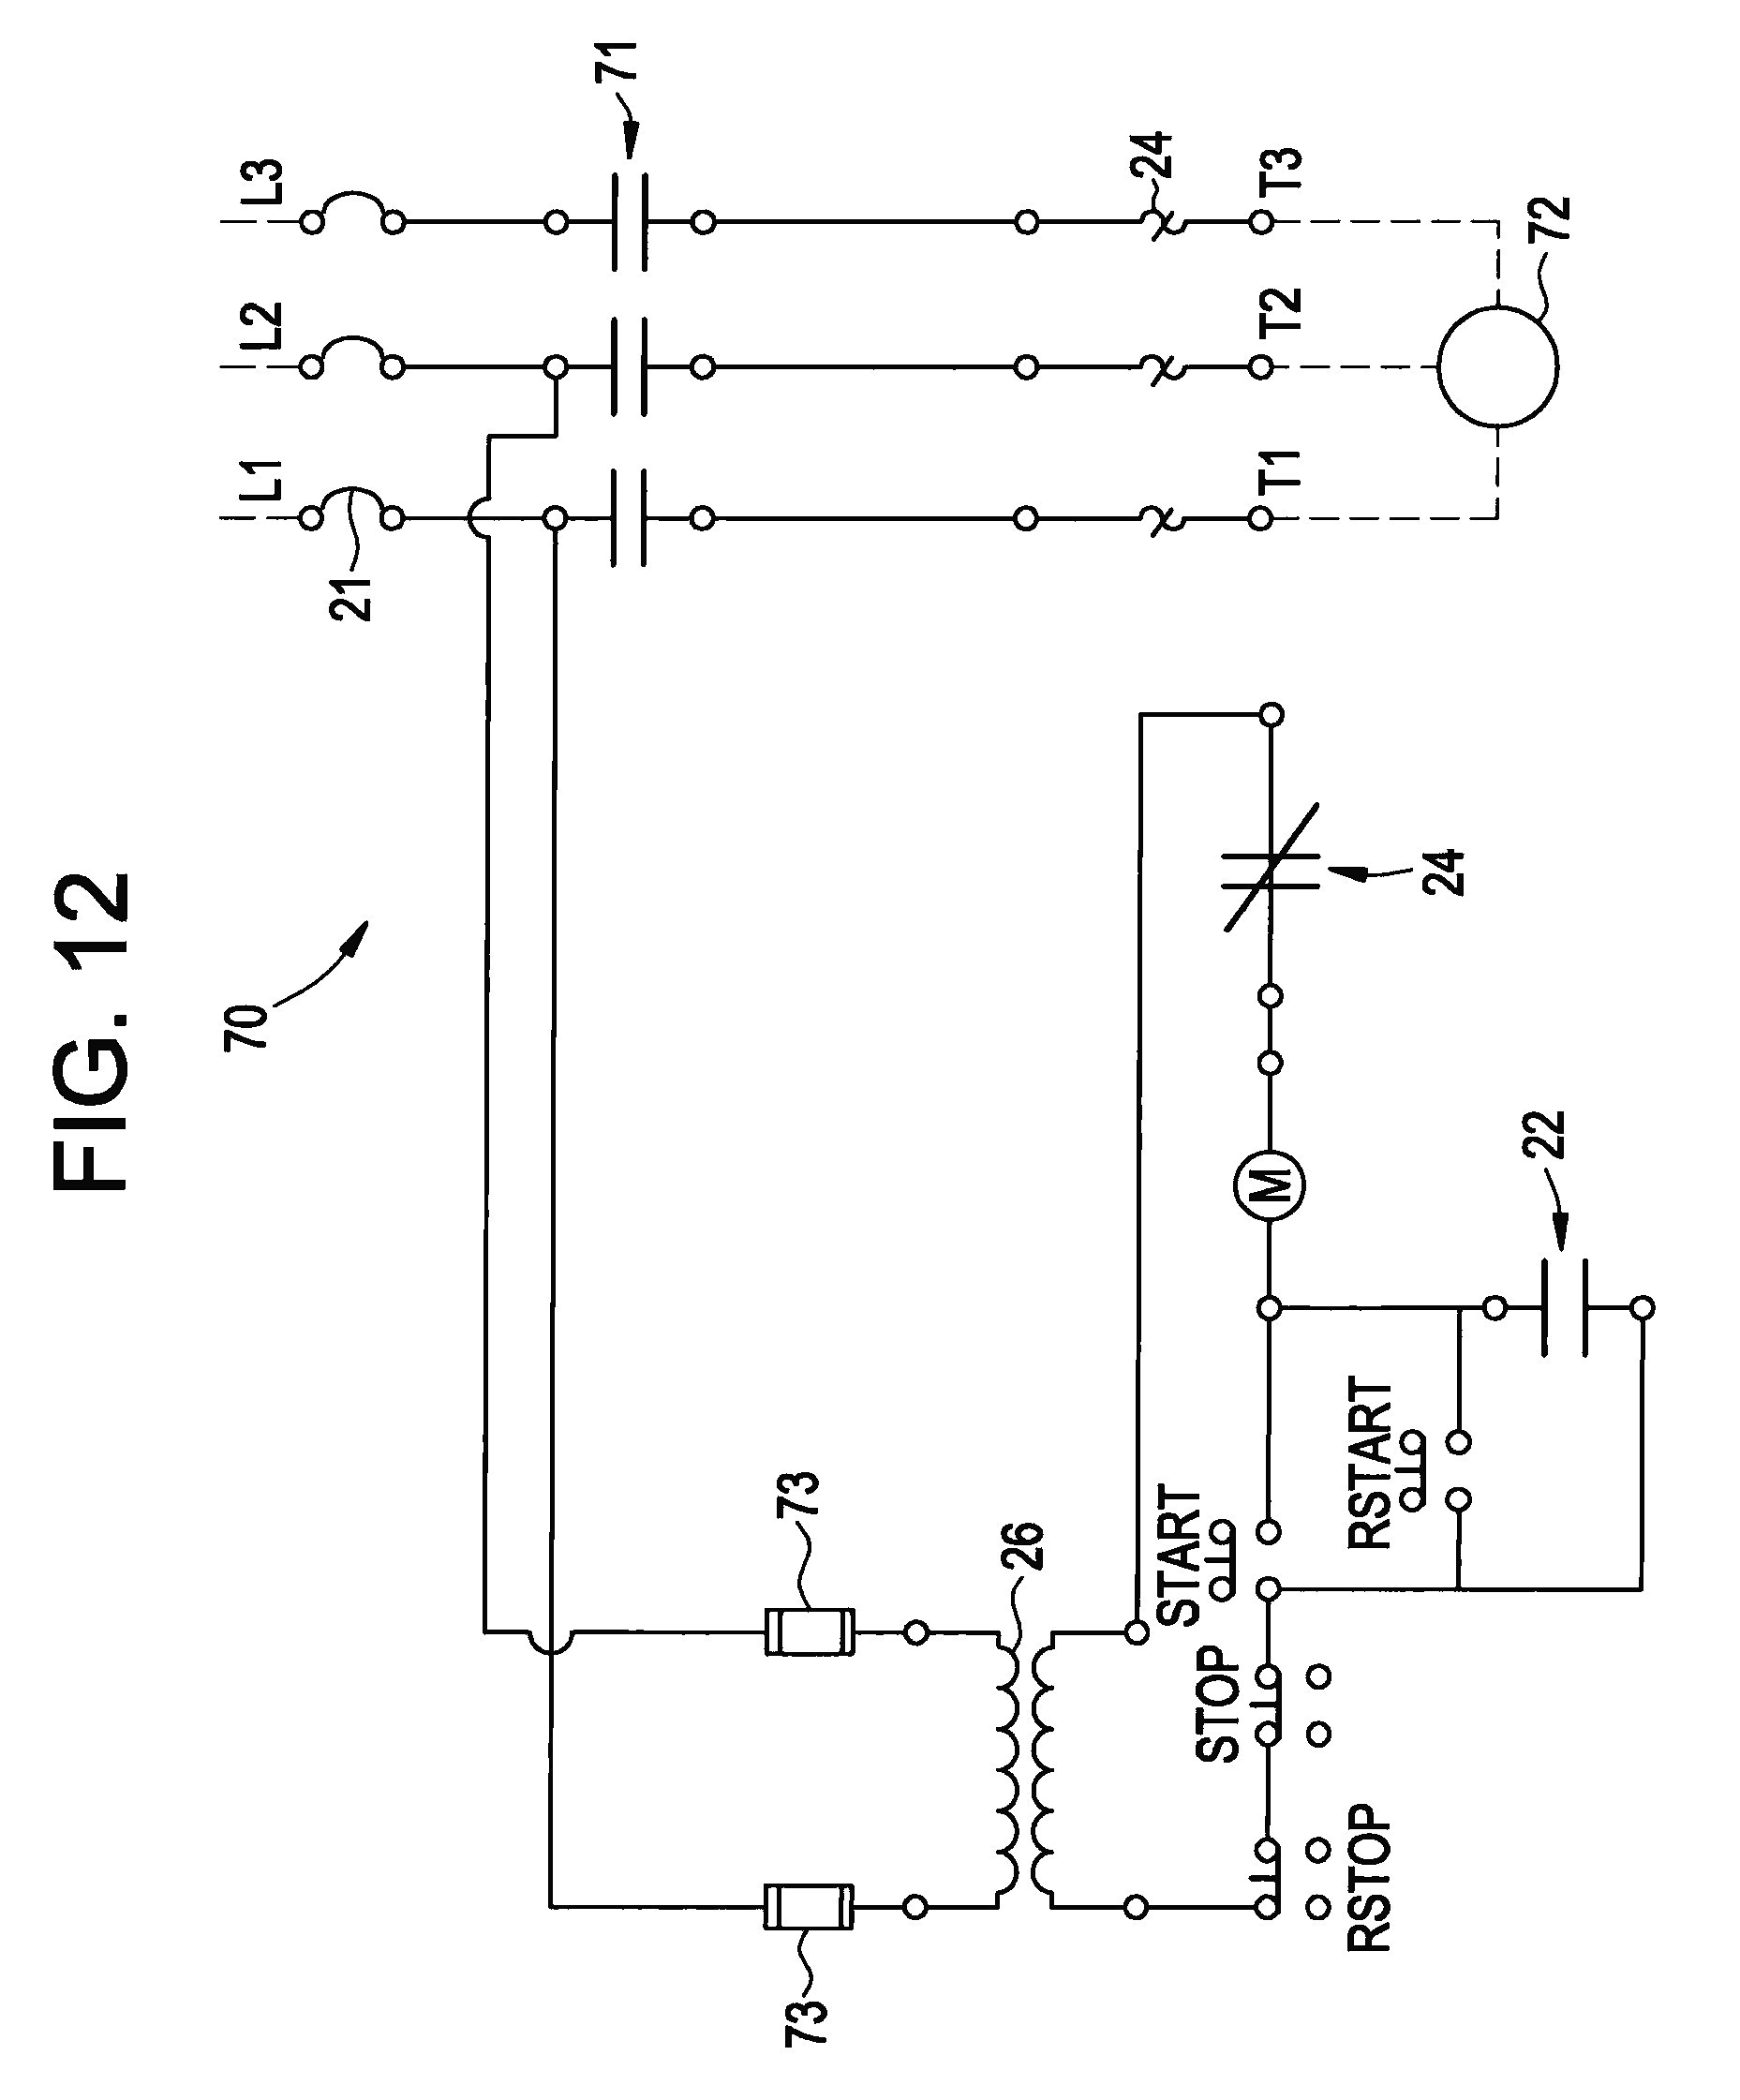 iec 60947 3 wiring diagram fresh 3 phase motor starter wiring diagram unique dol starter wiring